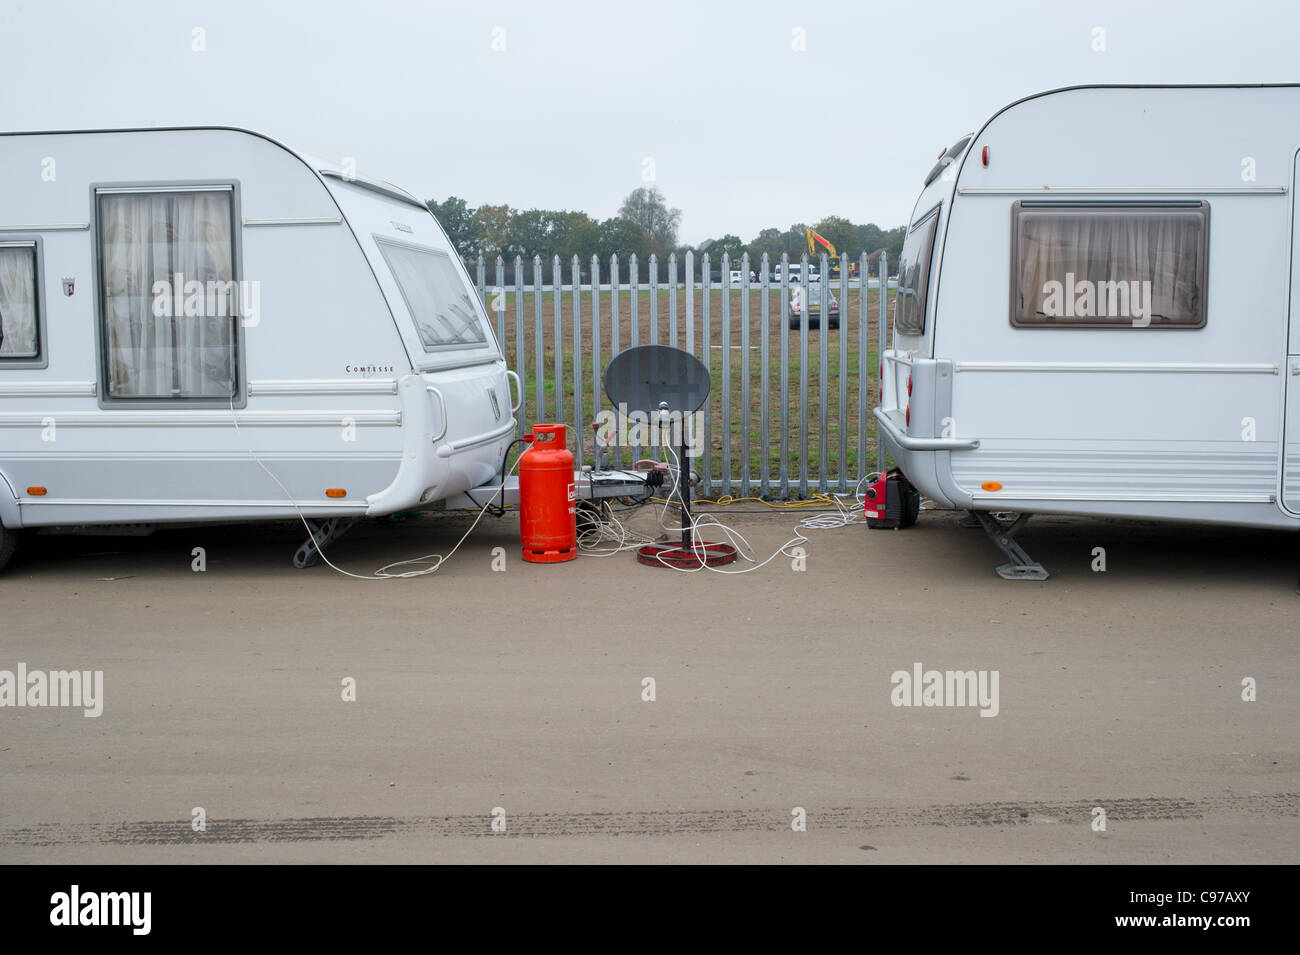 16th November 2011. Dale Farm Essex, UK. Two caravans with a  satellite dish parked on the legal side of the Dale - Stock Image